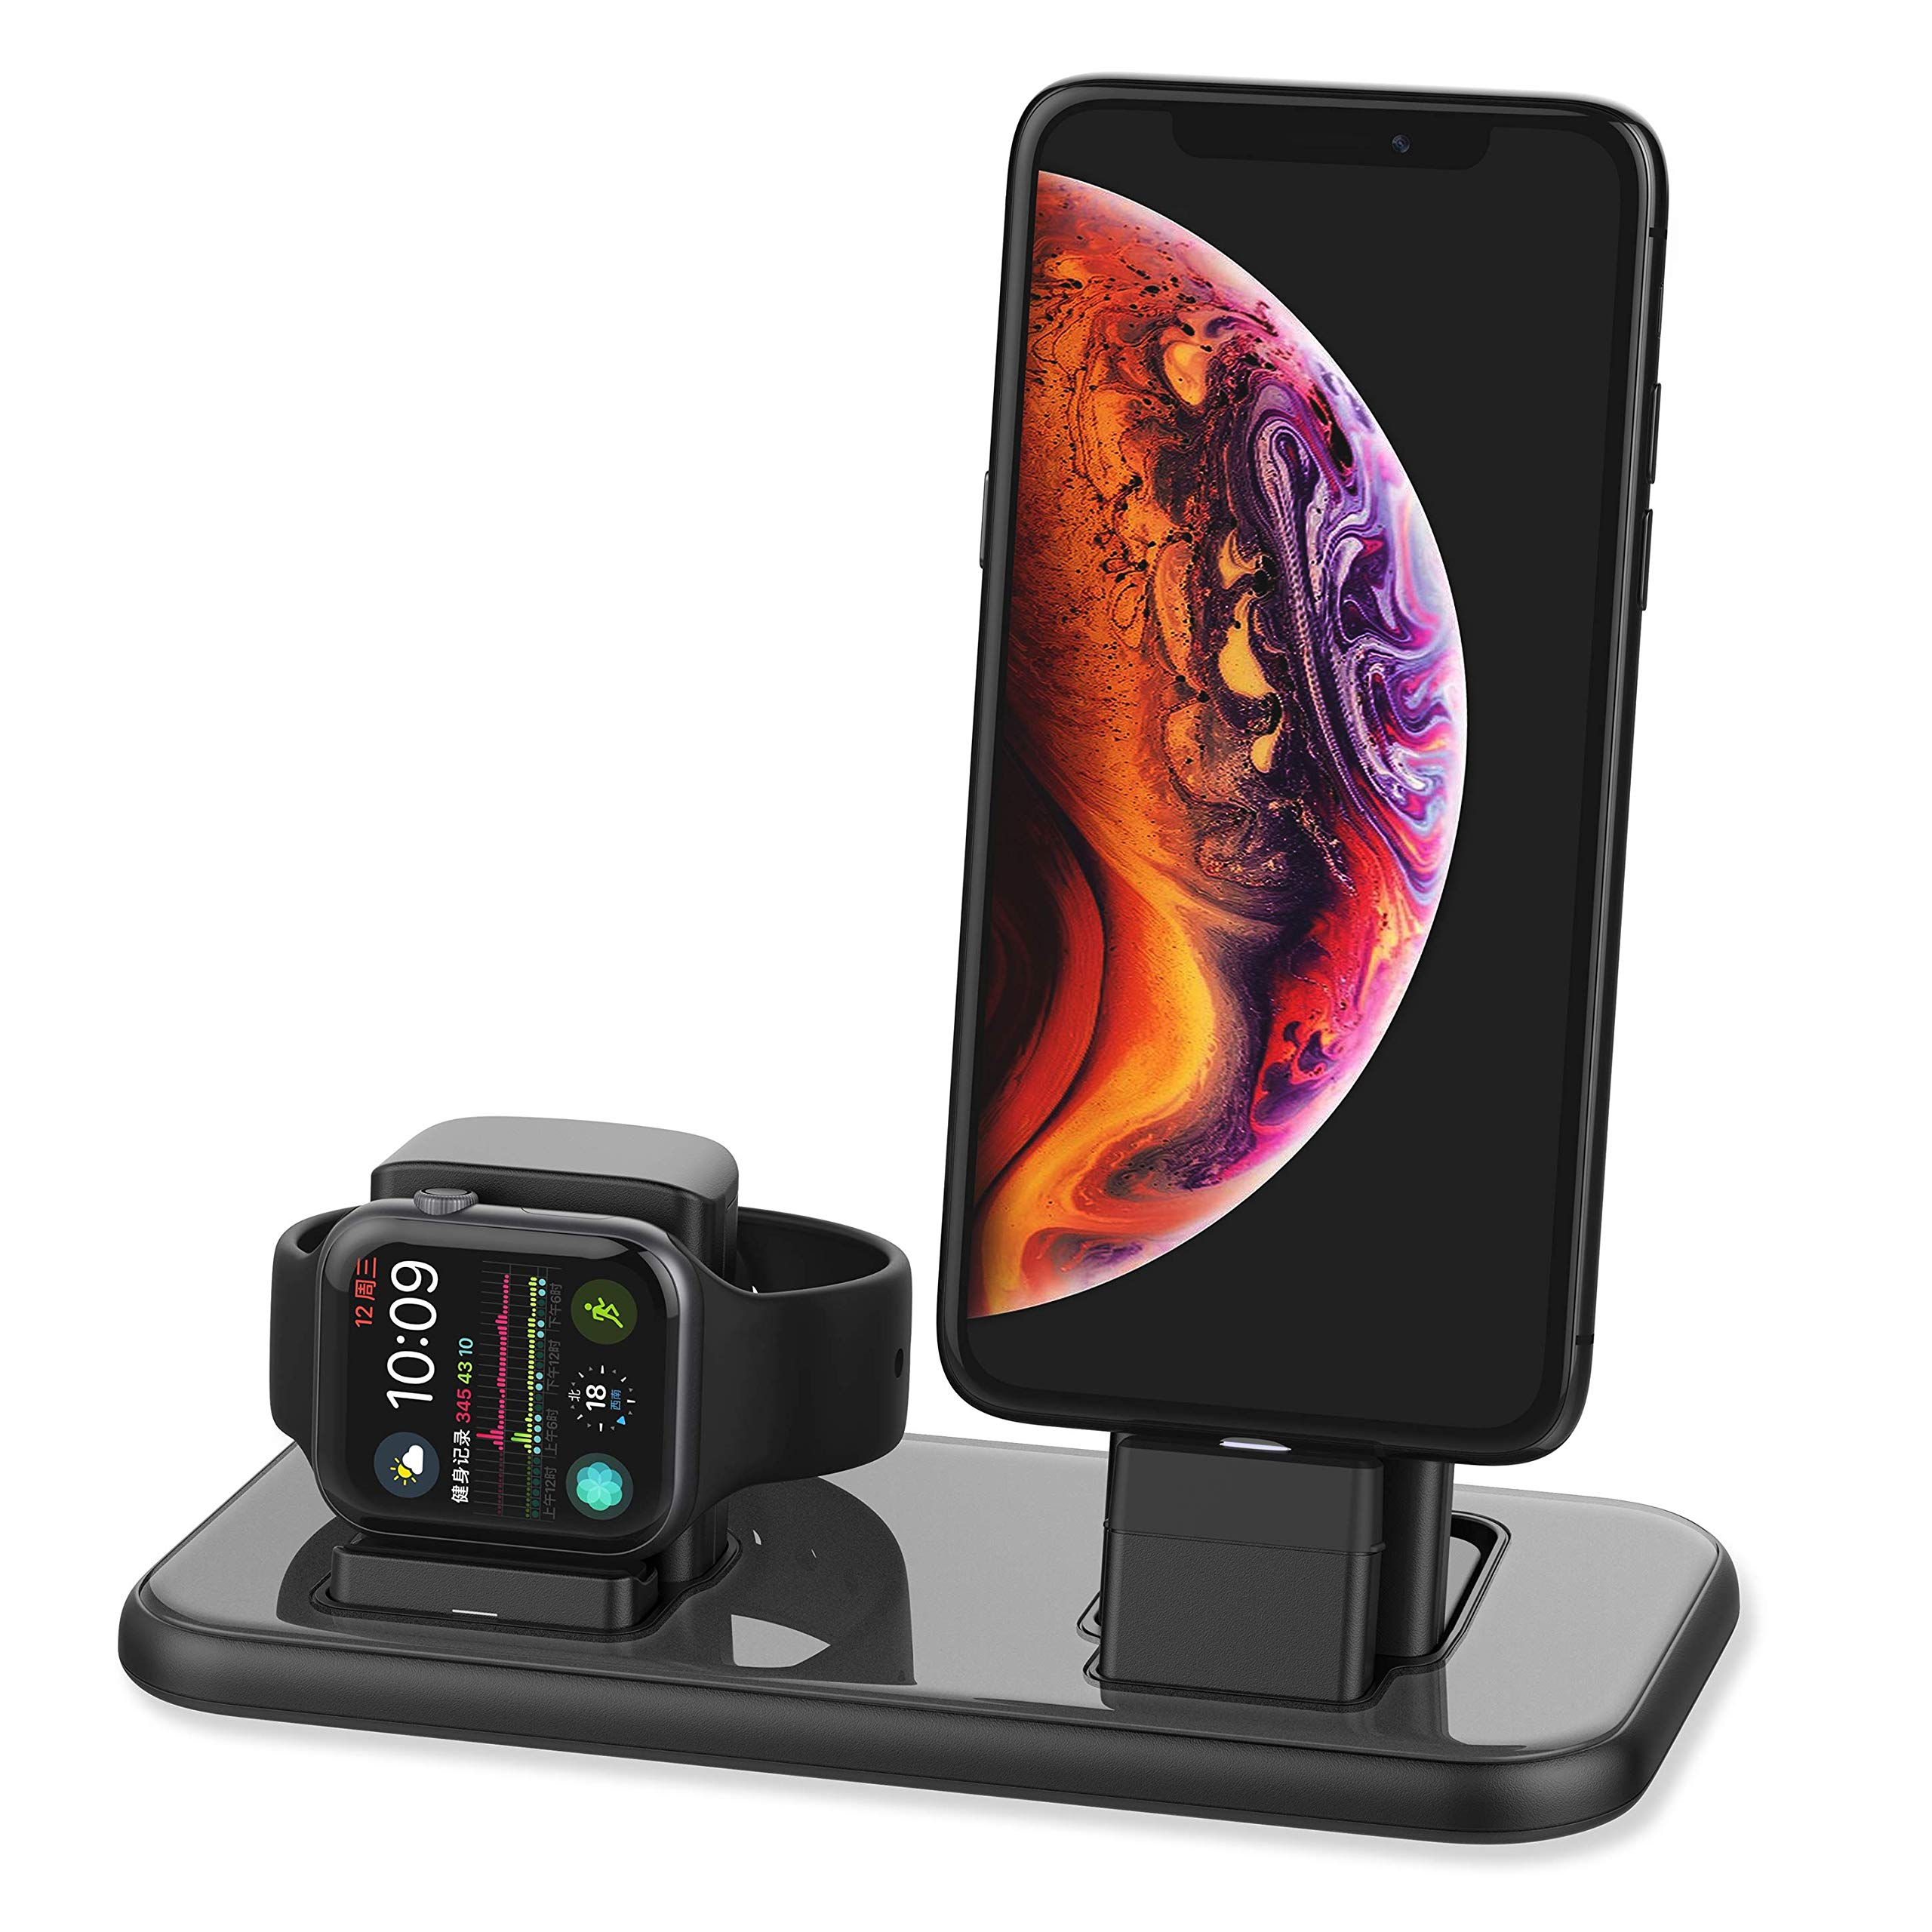 BEACOO Charging Stand for iWatch Series 4, 2 in 1 Charging Dock for iPhone Airpods Charging Station for iWatch 4/3/2/1/iPhone Xs/X Max/XR/X/8/8Plus/7/7 Plus /6S /6S Plus by BEACOO